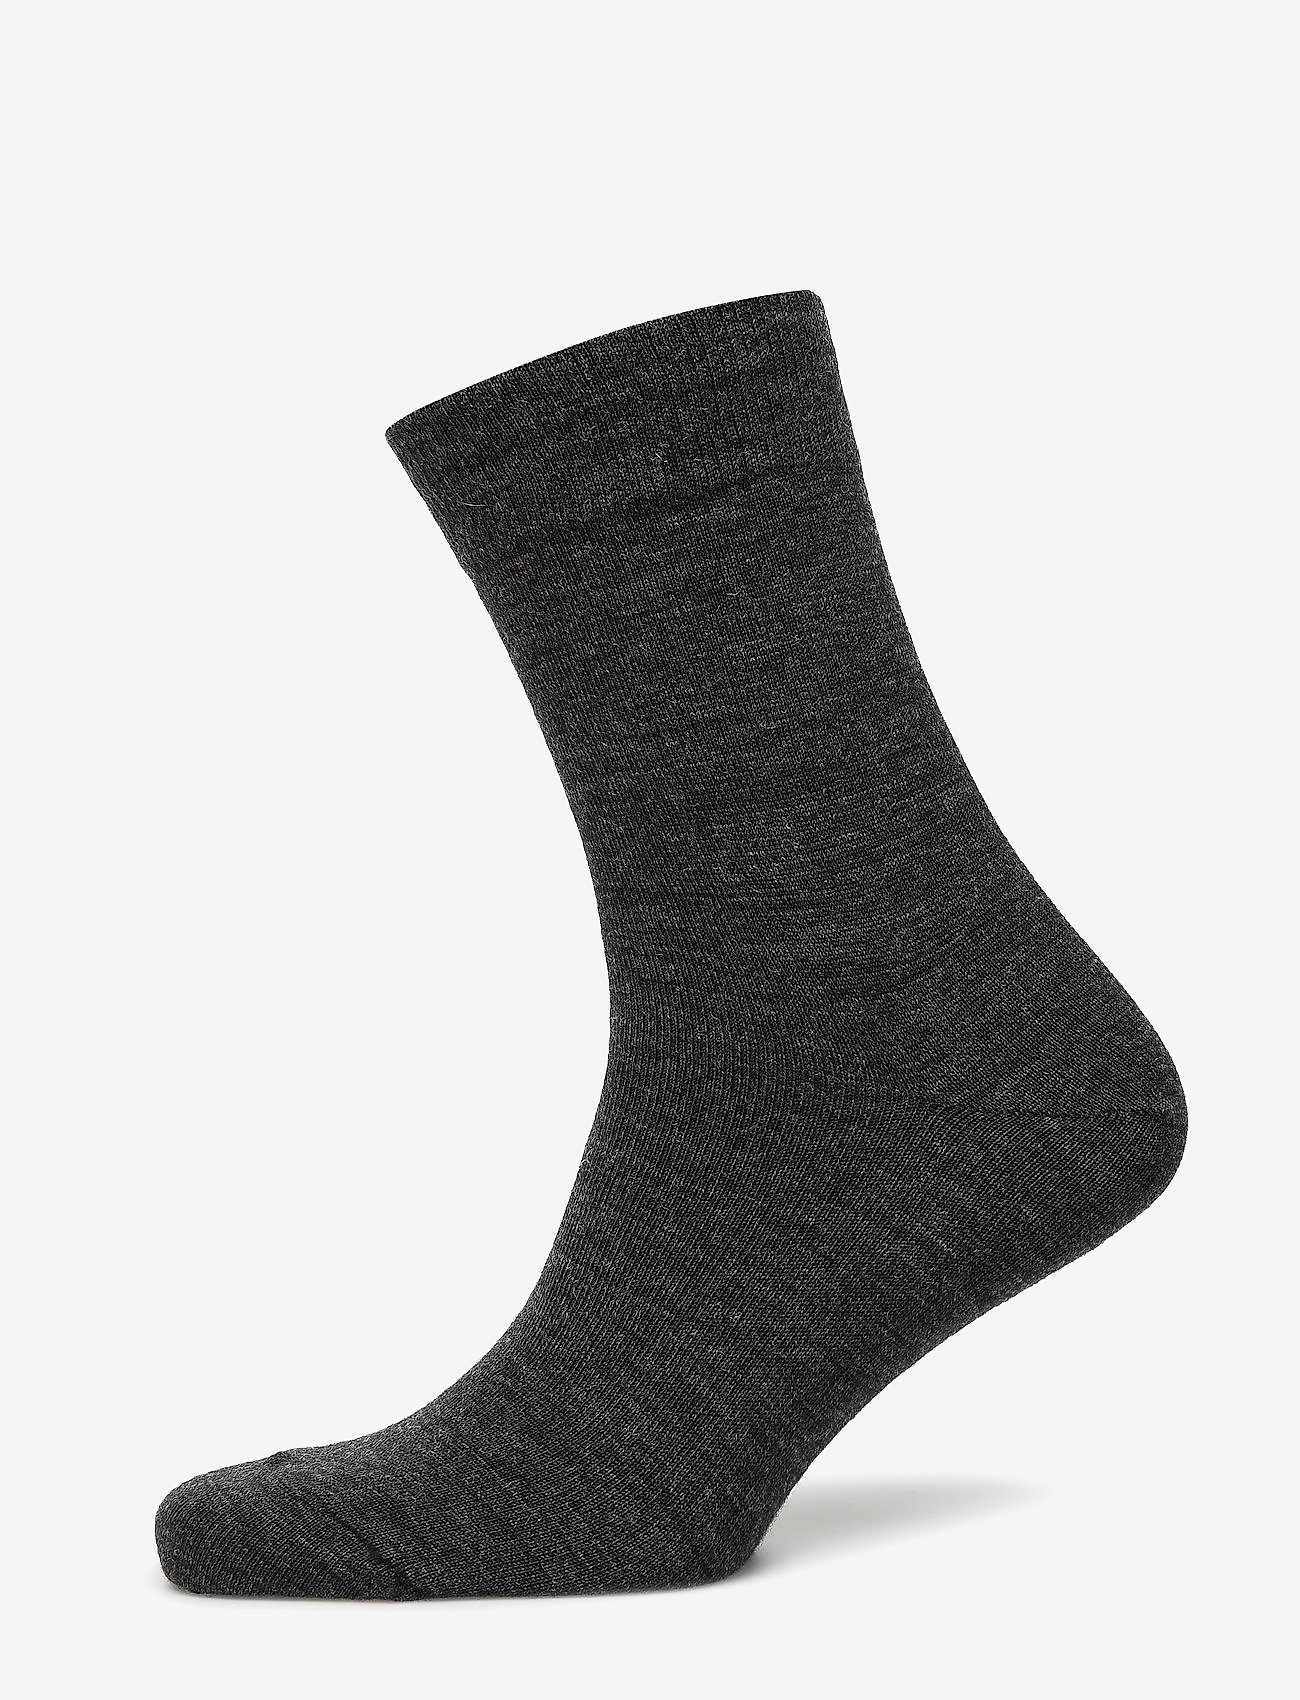 Egtved - Egtved business socks - regular socks - dark grey - 0